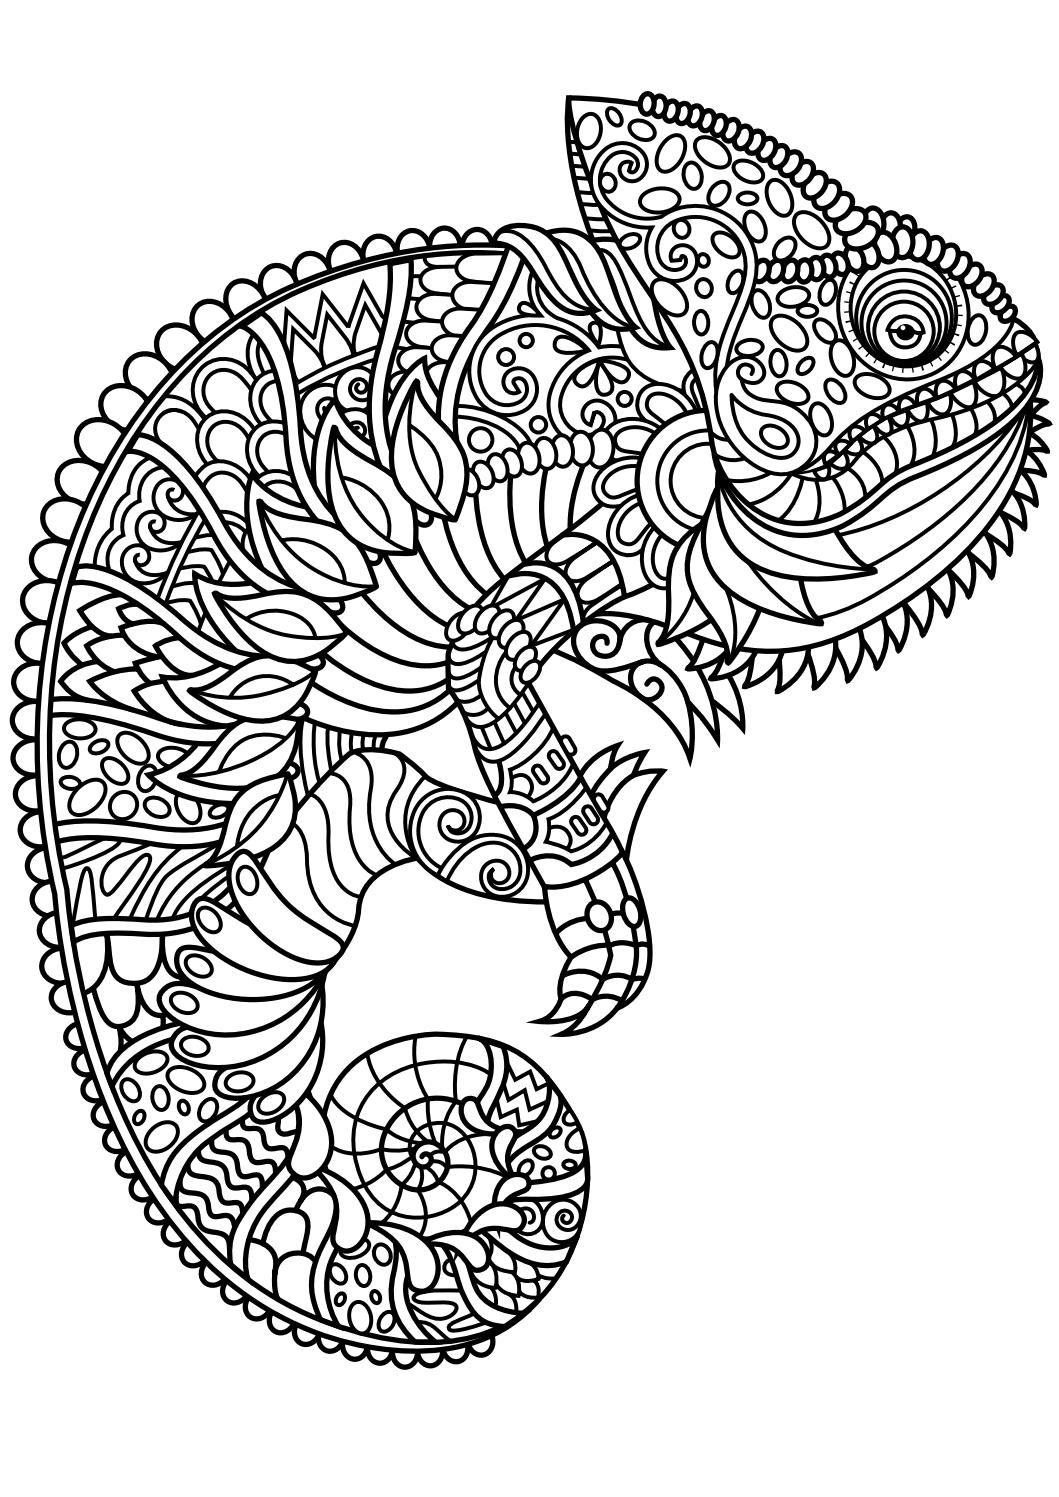 Animal coloring pages pdf | Free adult coloring pages ... | free online coloring pages for adults animals